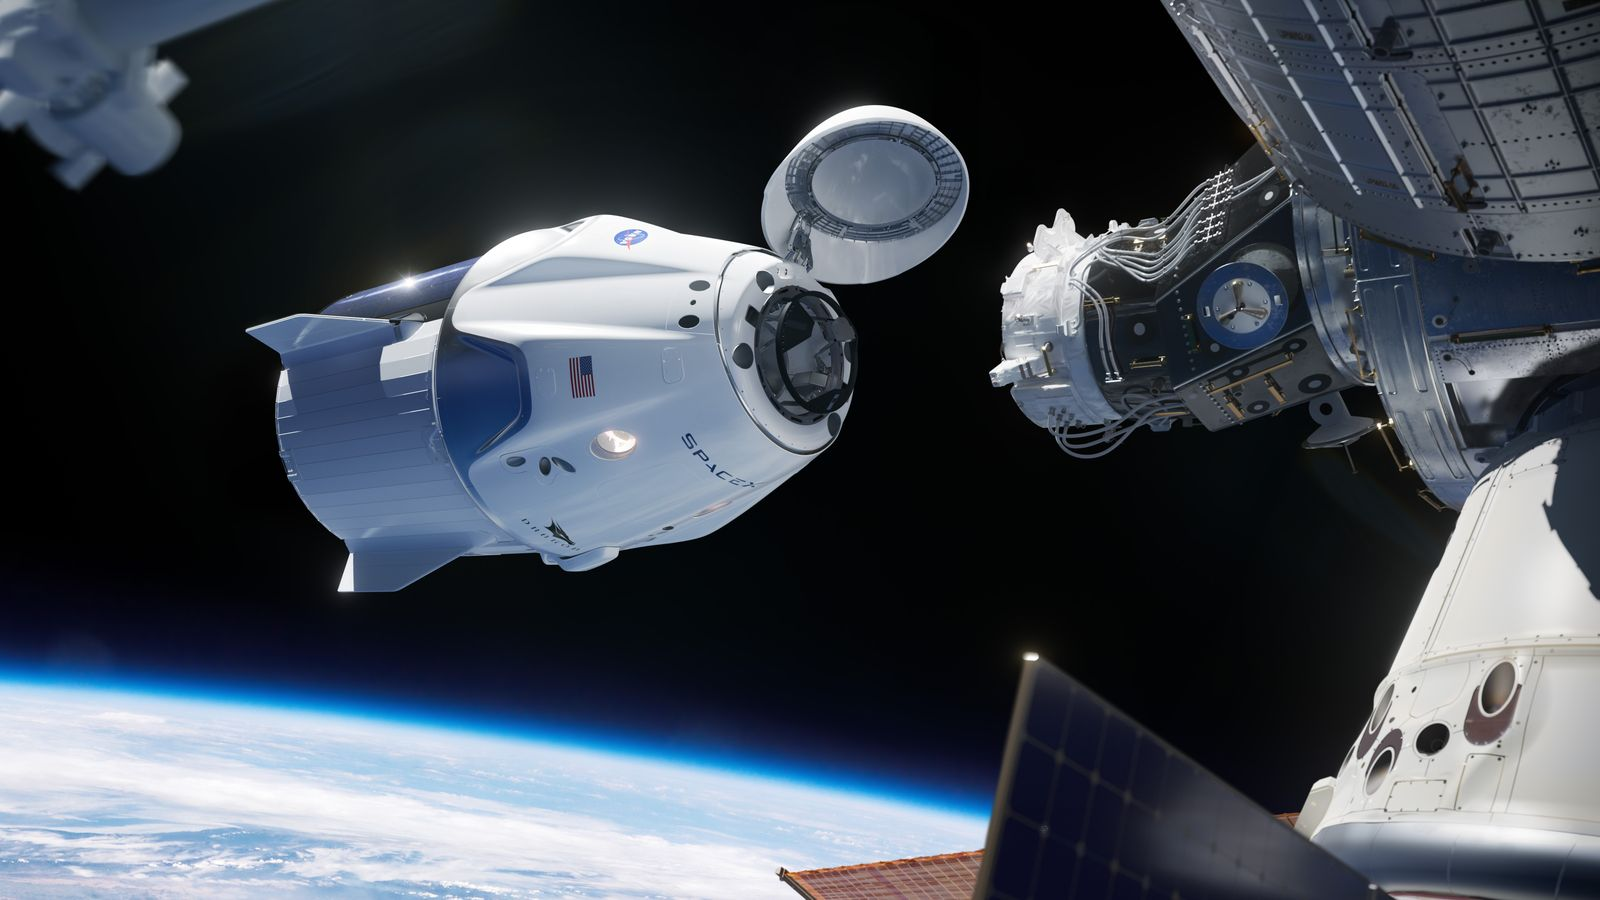 NASA's Commercial Crew Program: crew flight set to launch from US soil on 27 May, USA - 25 Feb 2019